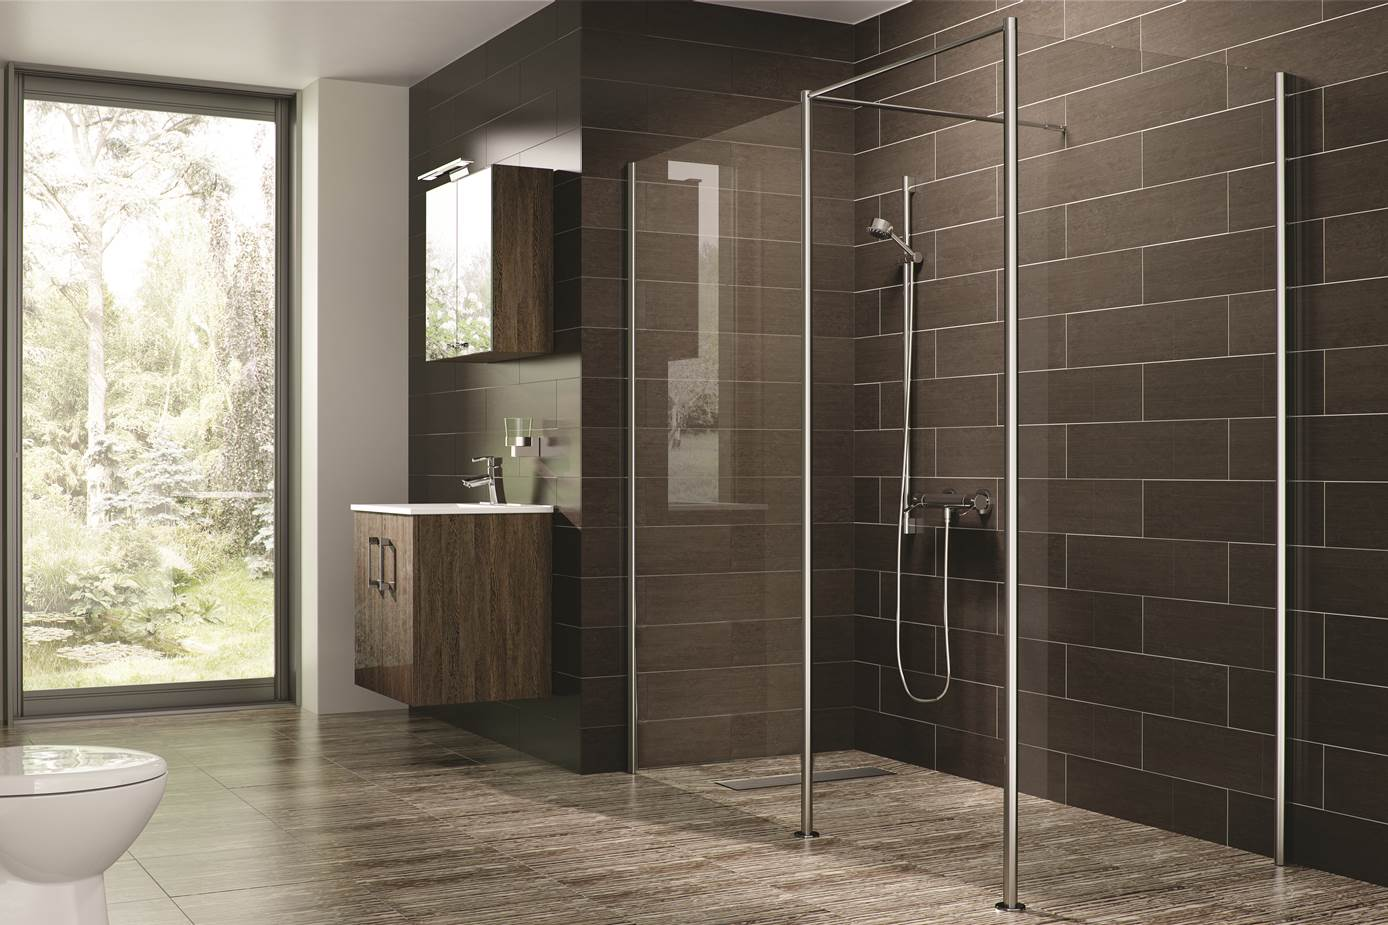 Wet Rooms Are Growing in Popularity | AKW